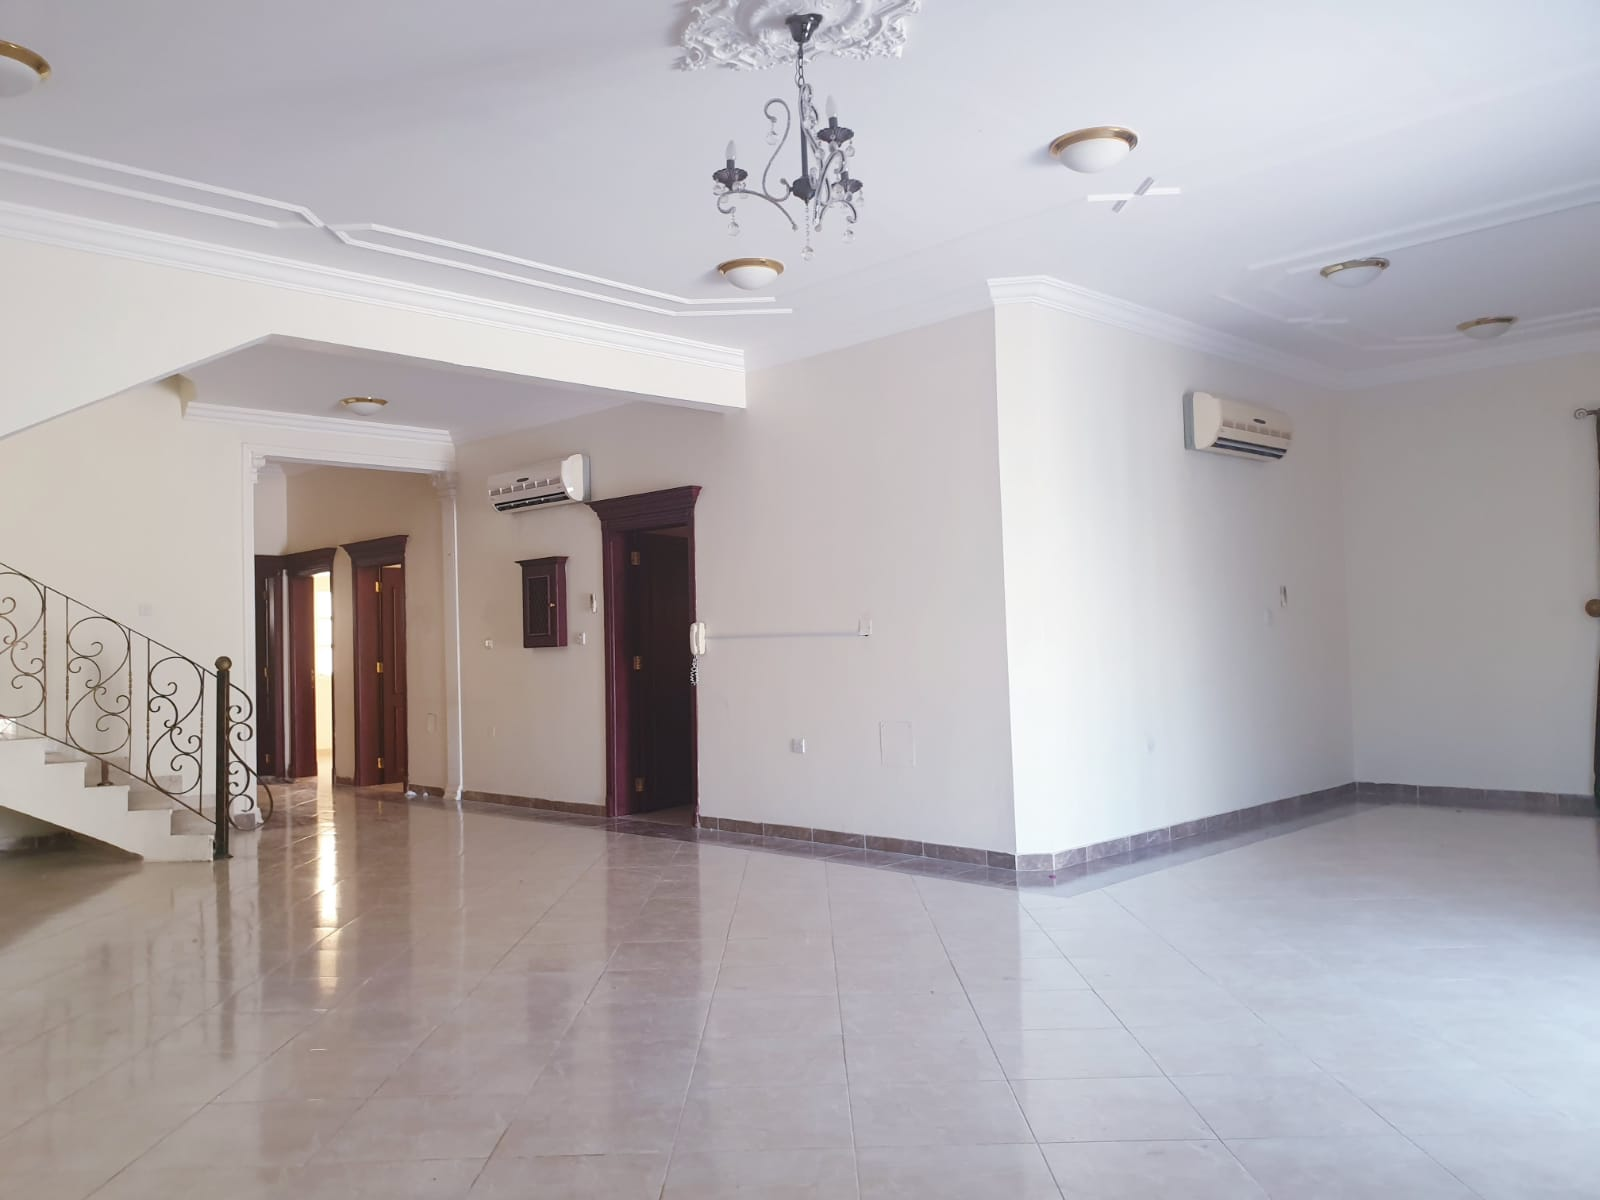 6 Bedroom Villa Available for Rent in Matar Qadeem Area